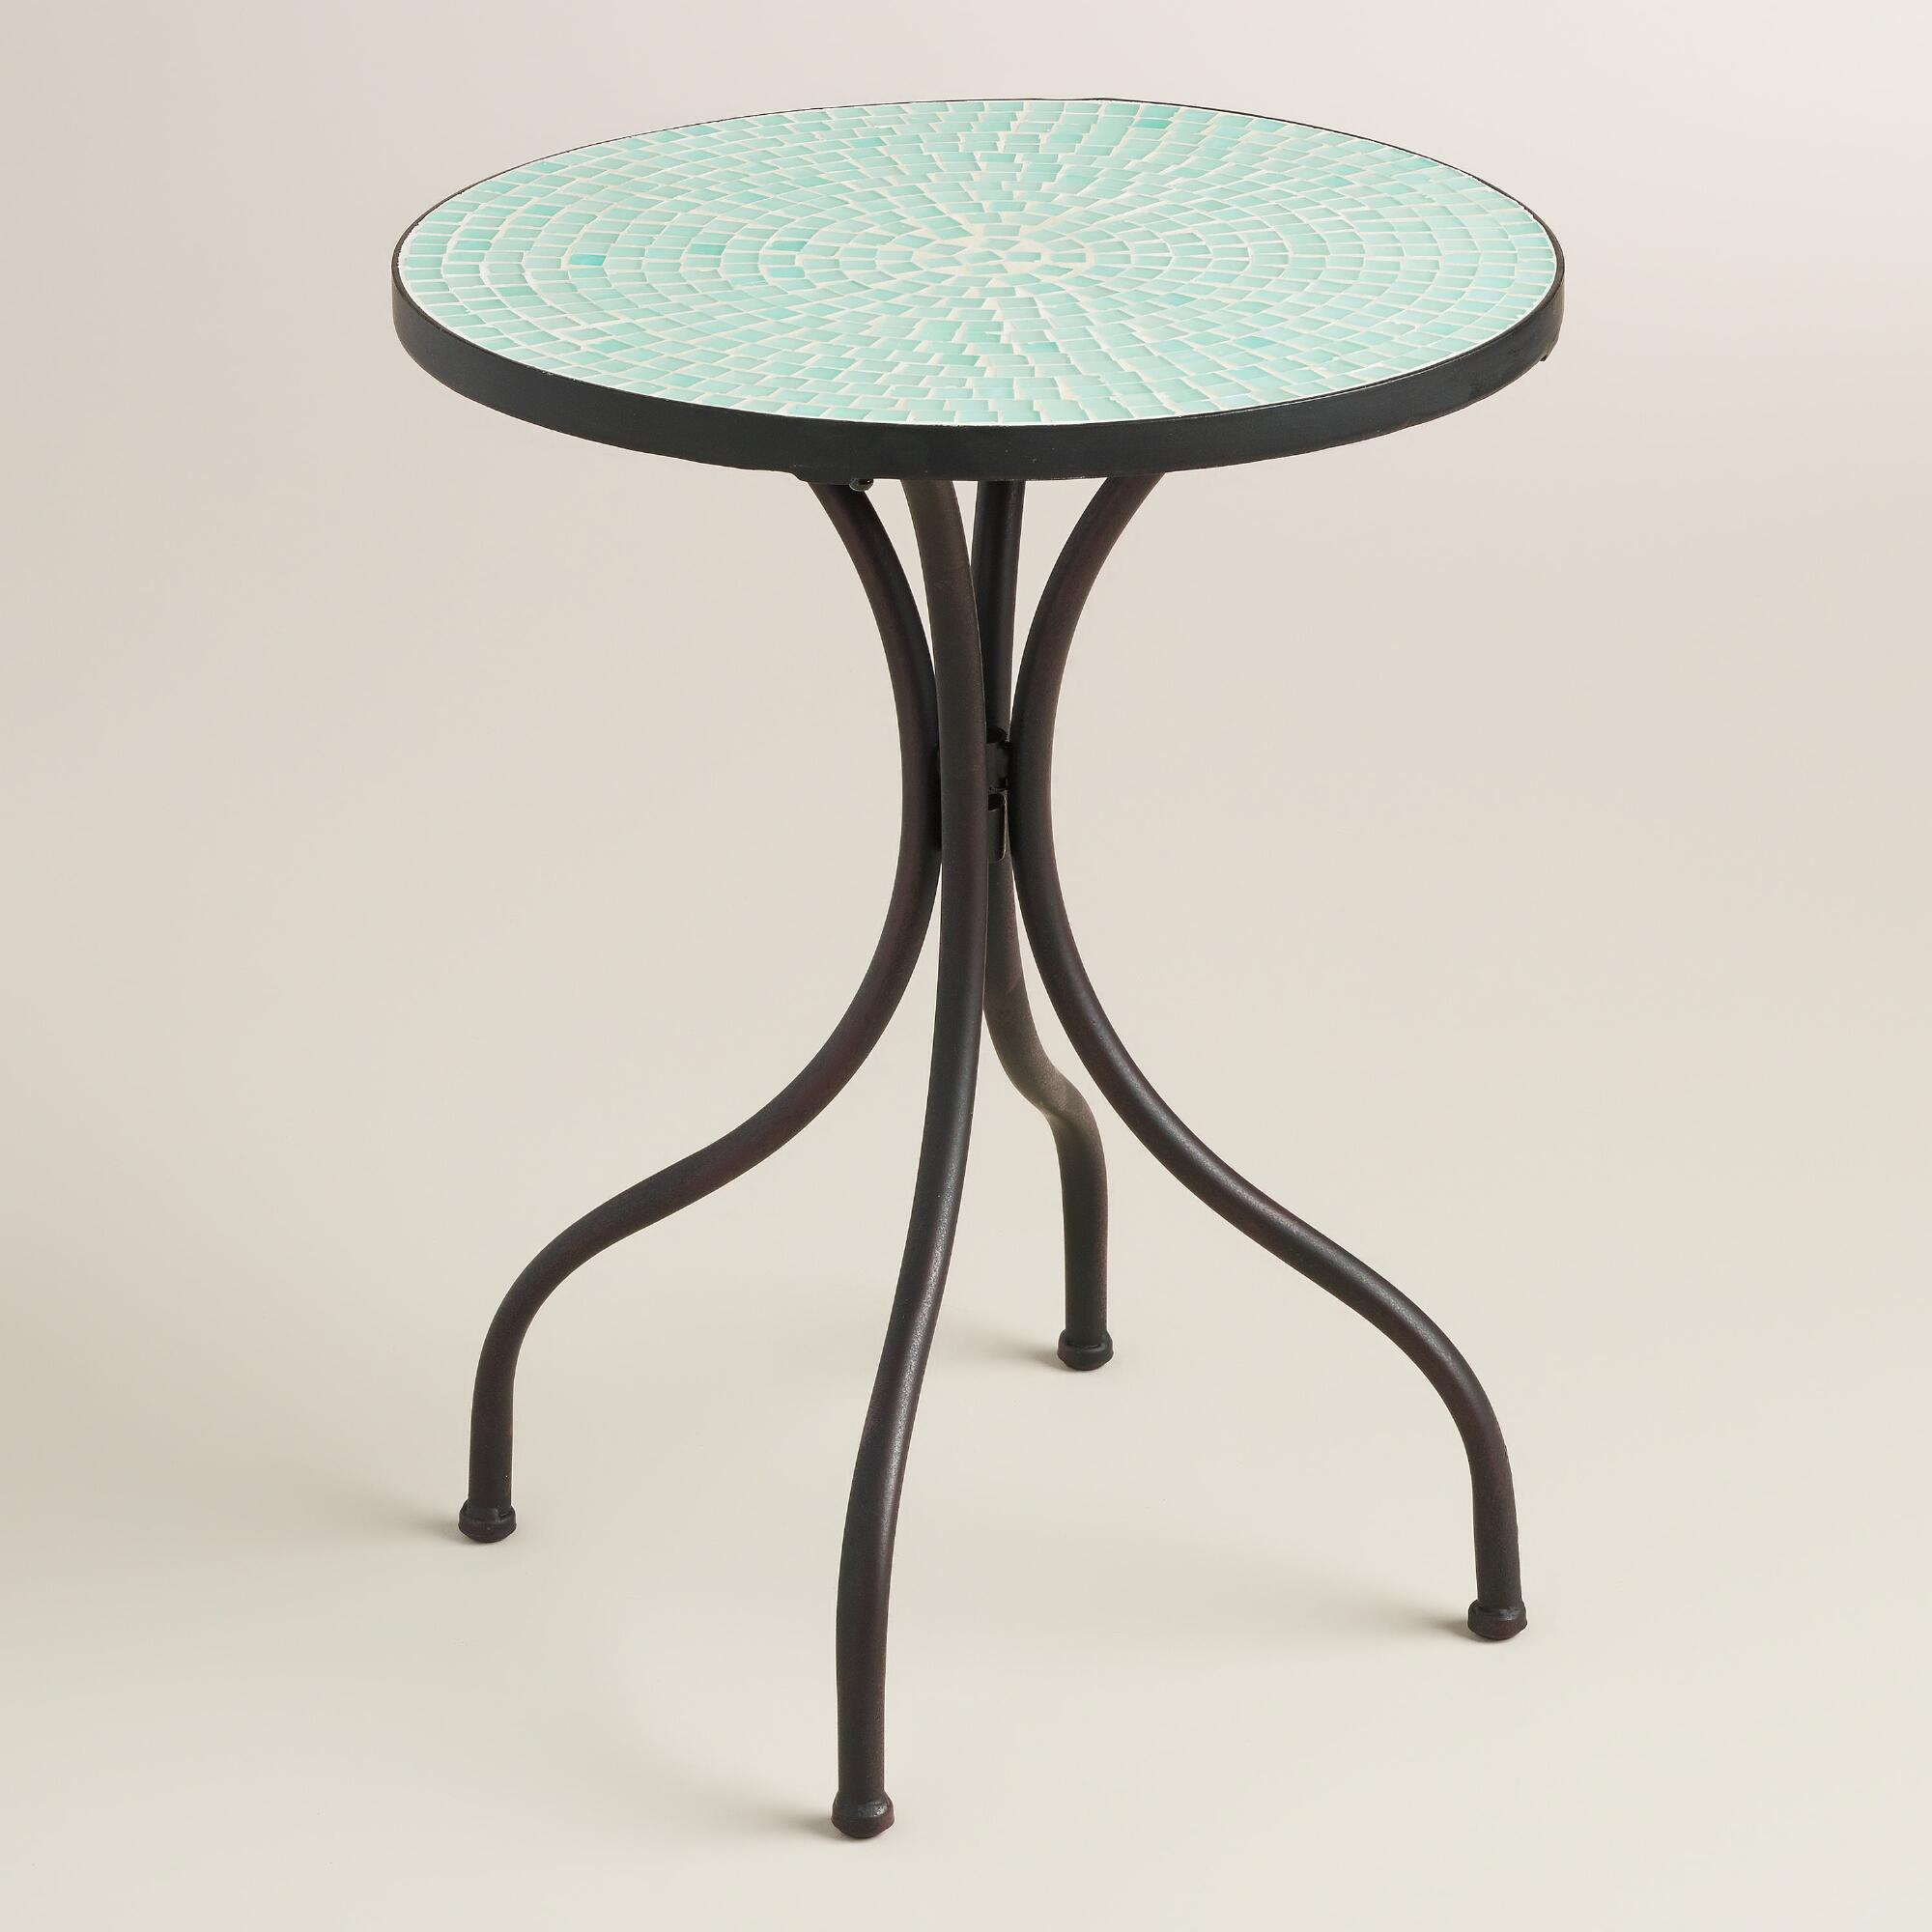 Round White Marble Milan Accent Table By World Market: Light Blue Cadiz Accent Table